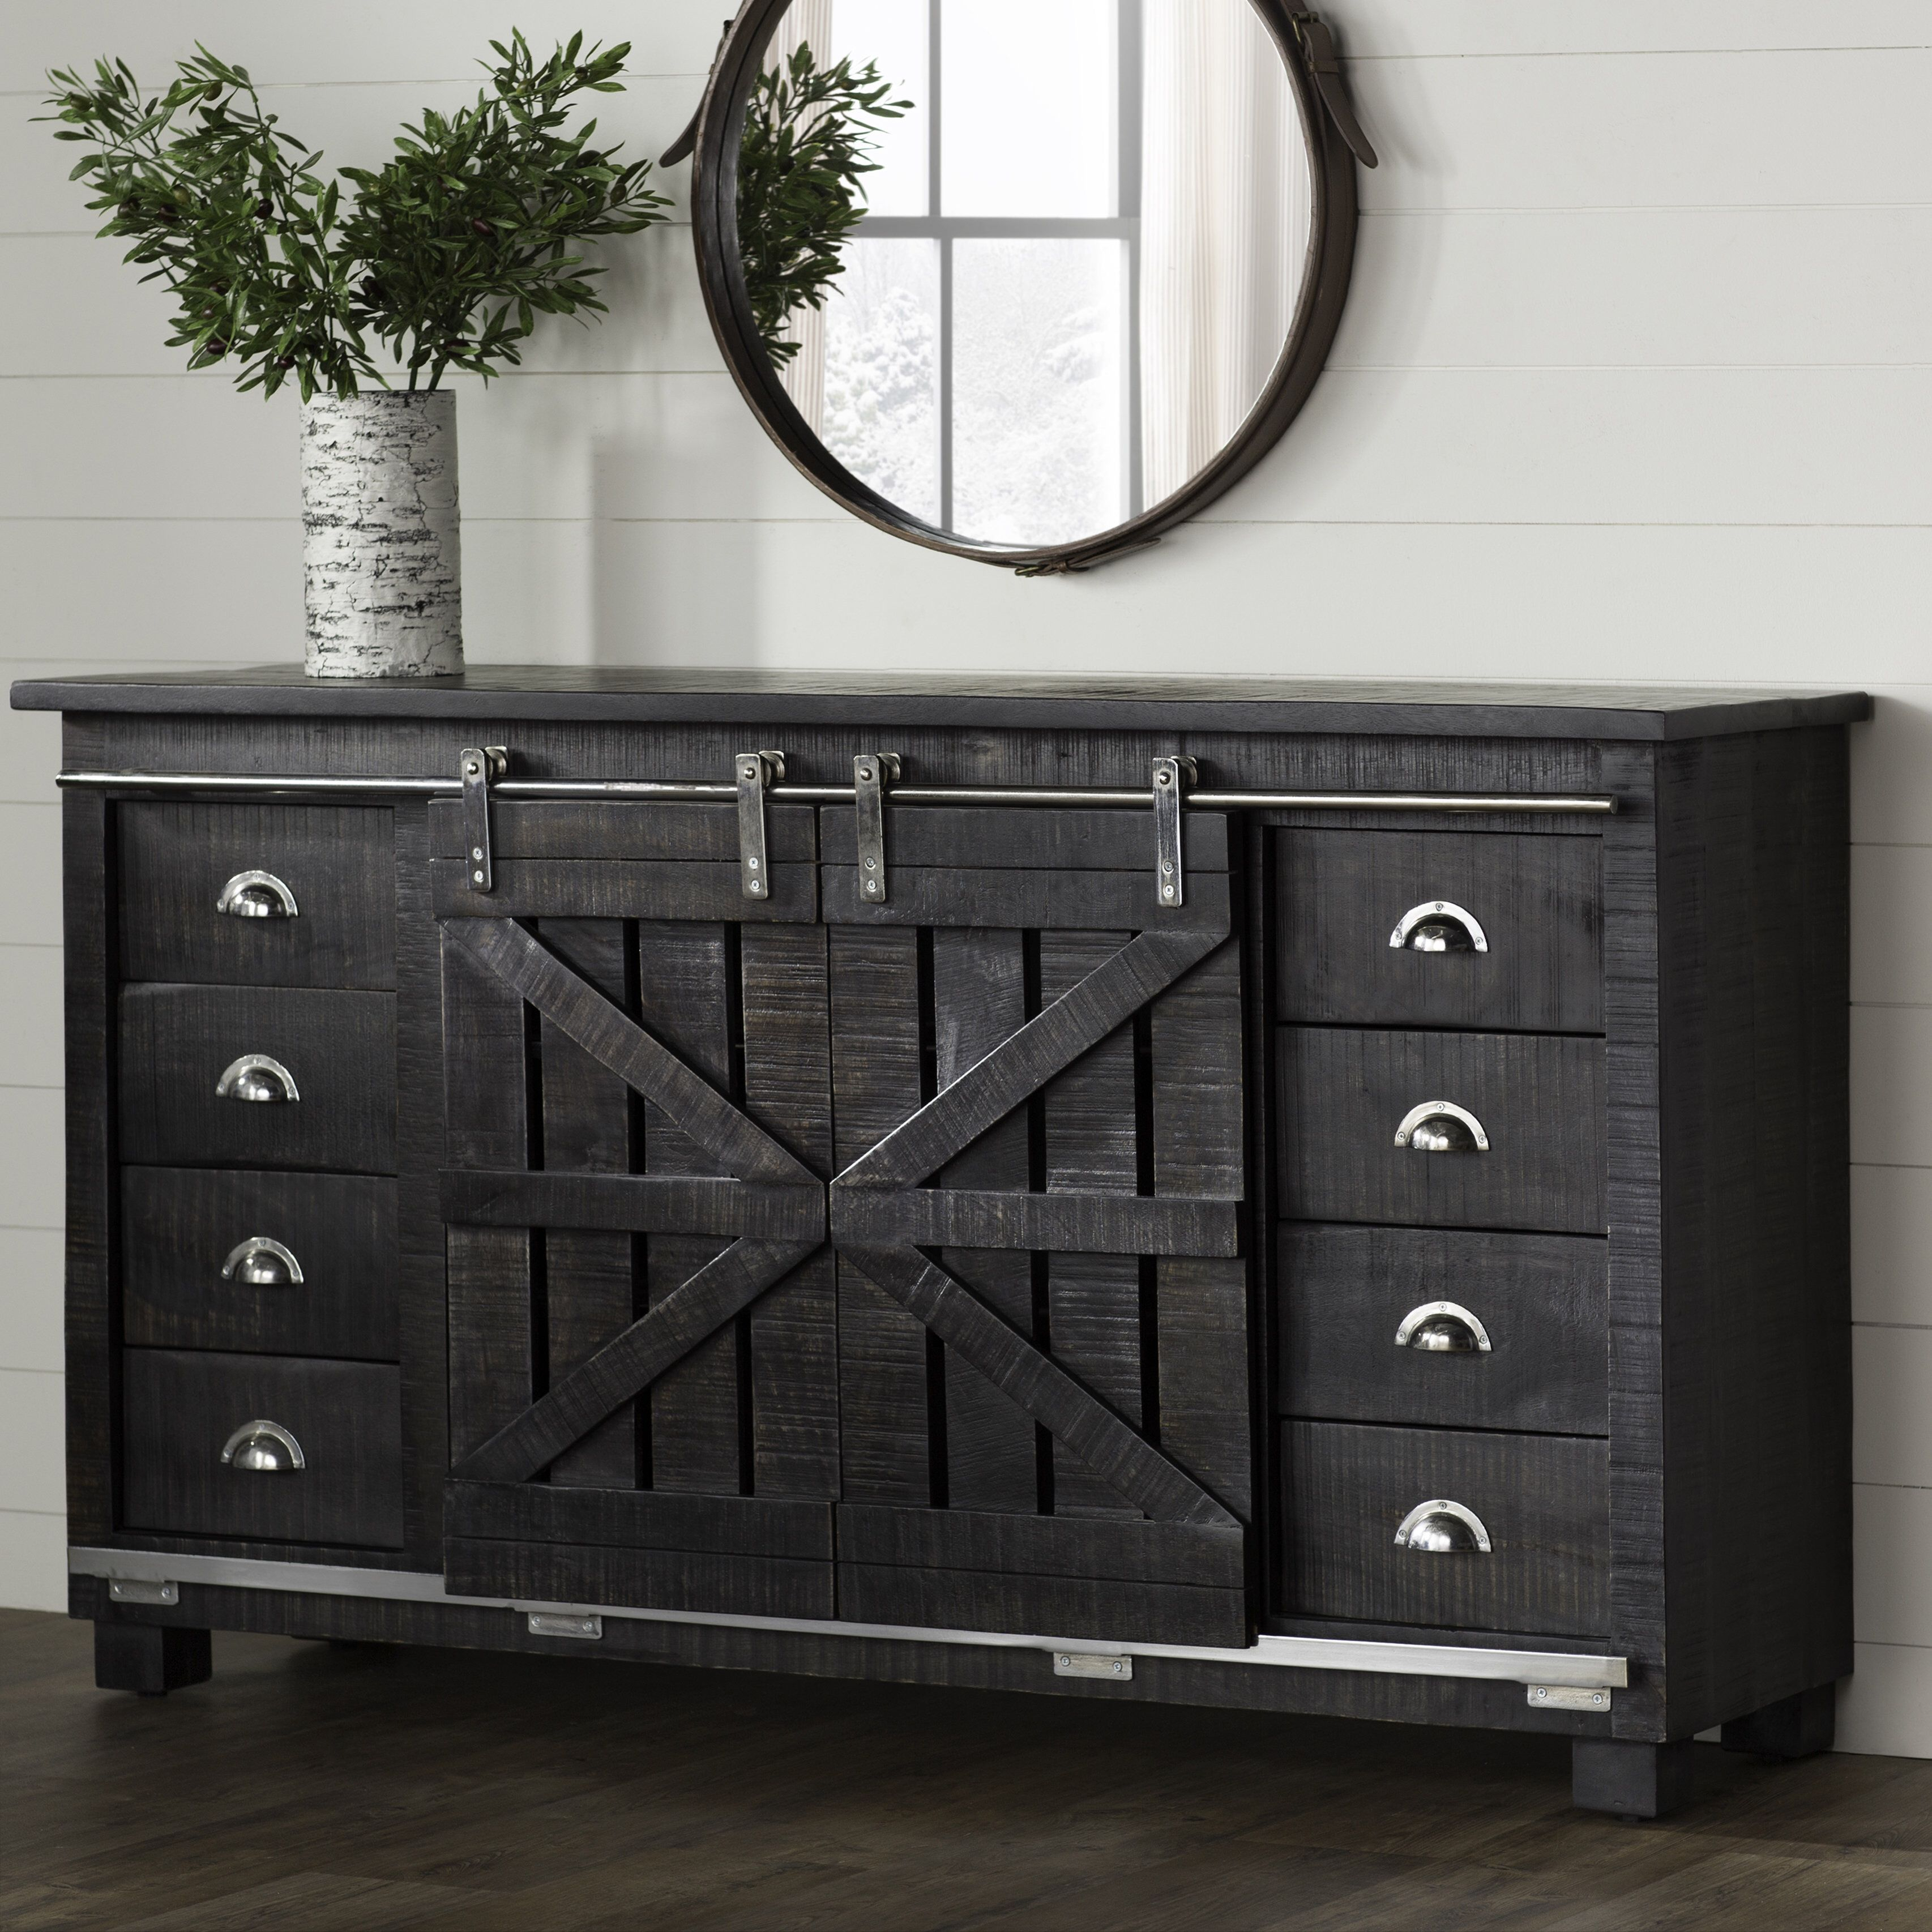 Deana Credenza | Dining Room In 2019 | Shabby Chic Furniture With Regard To Alegre Sideboards (Gallery 4 of 30)